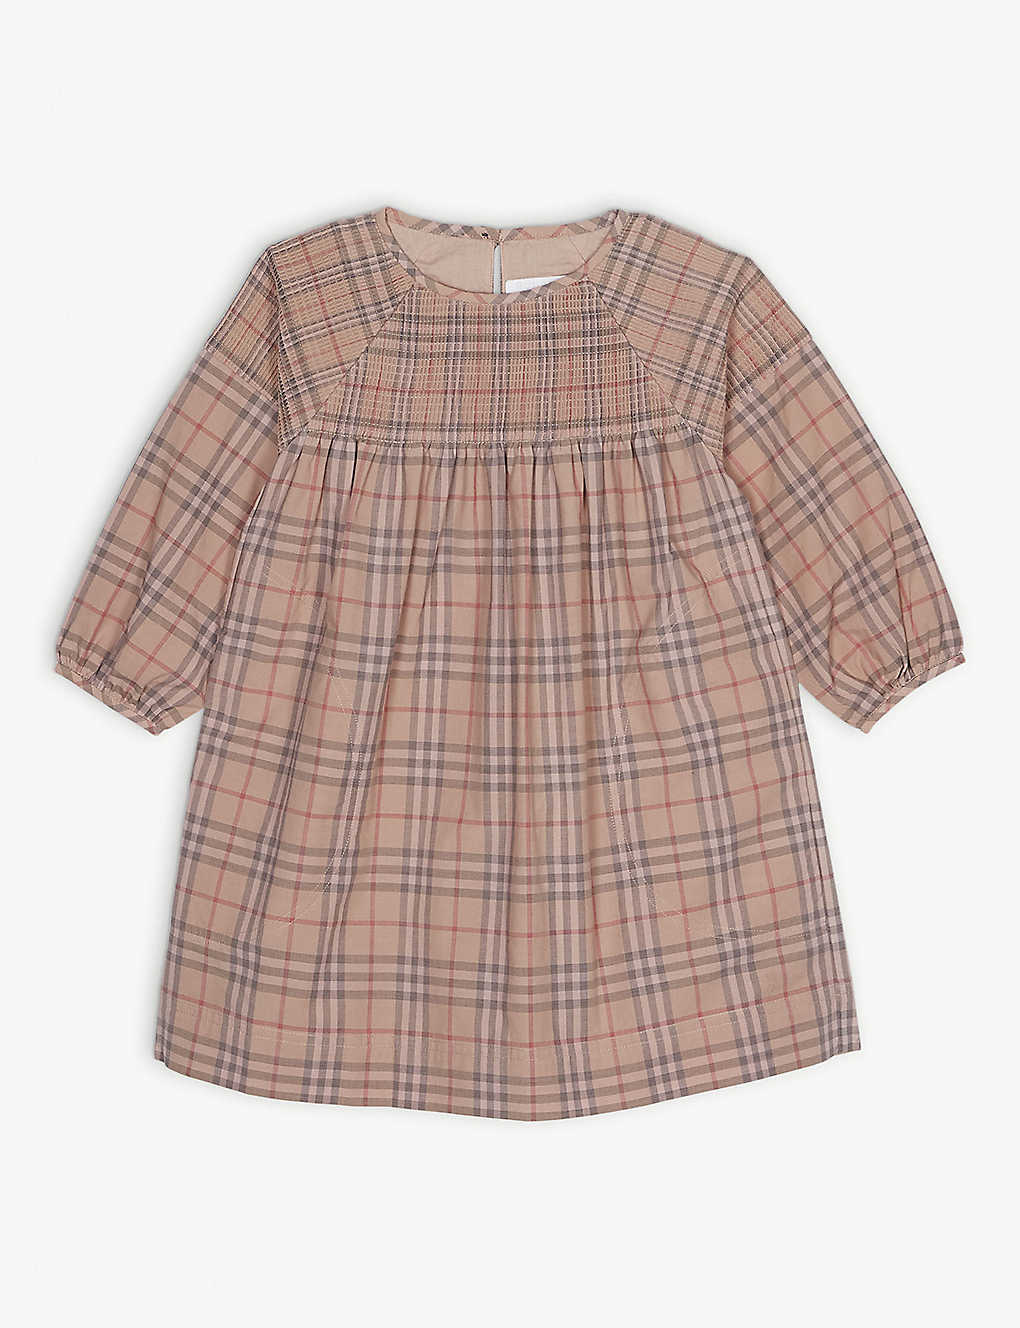 98a70cea4af08 BURBERRY - Loralie check cotton dress 3-14 years | Selfridges.com